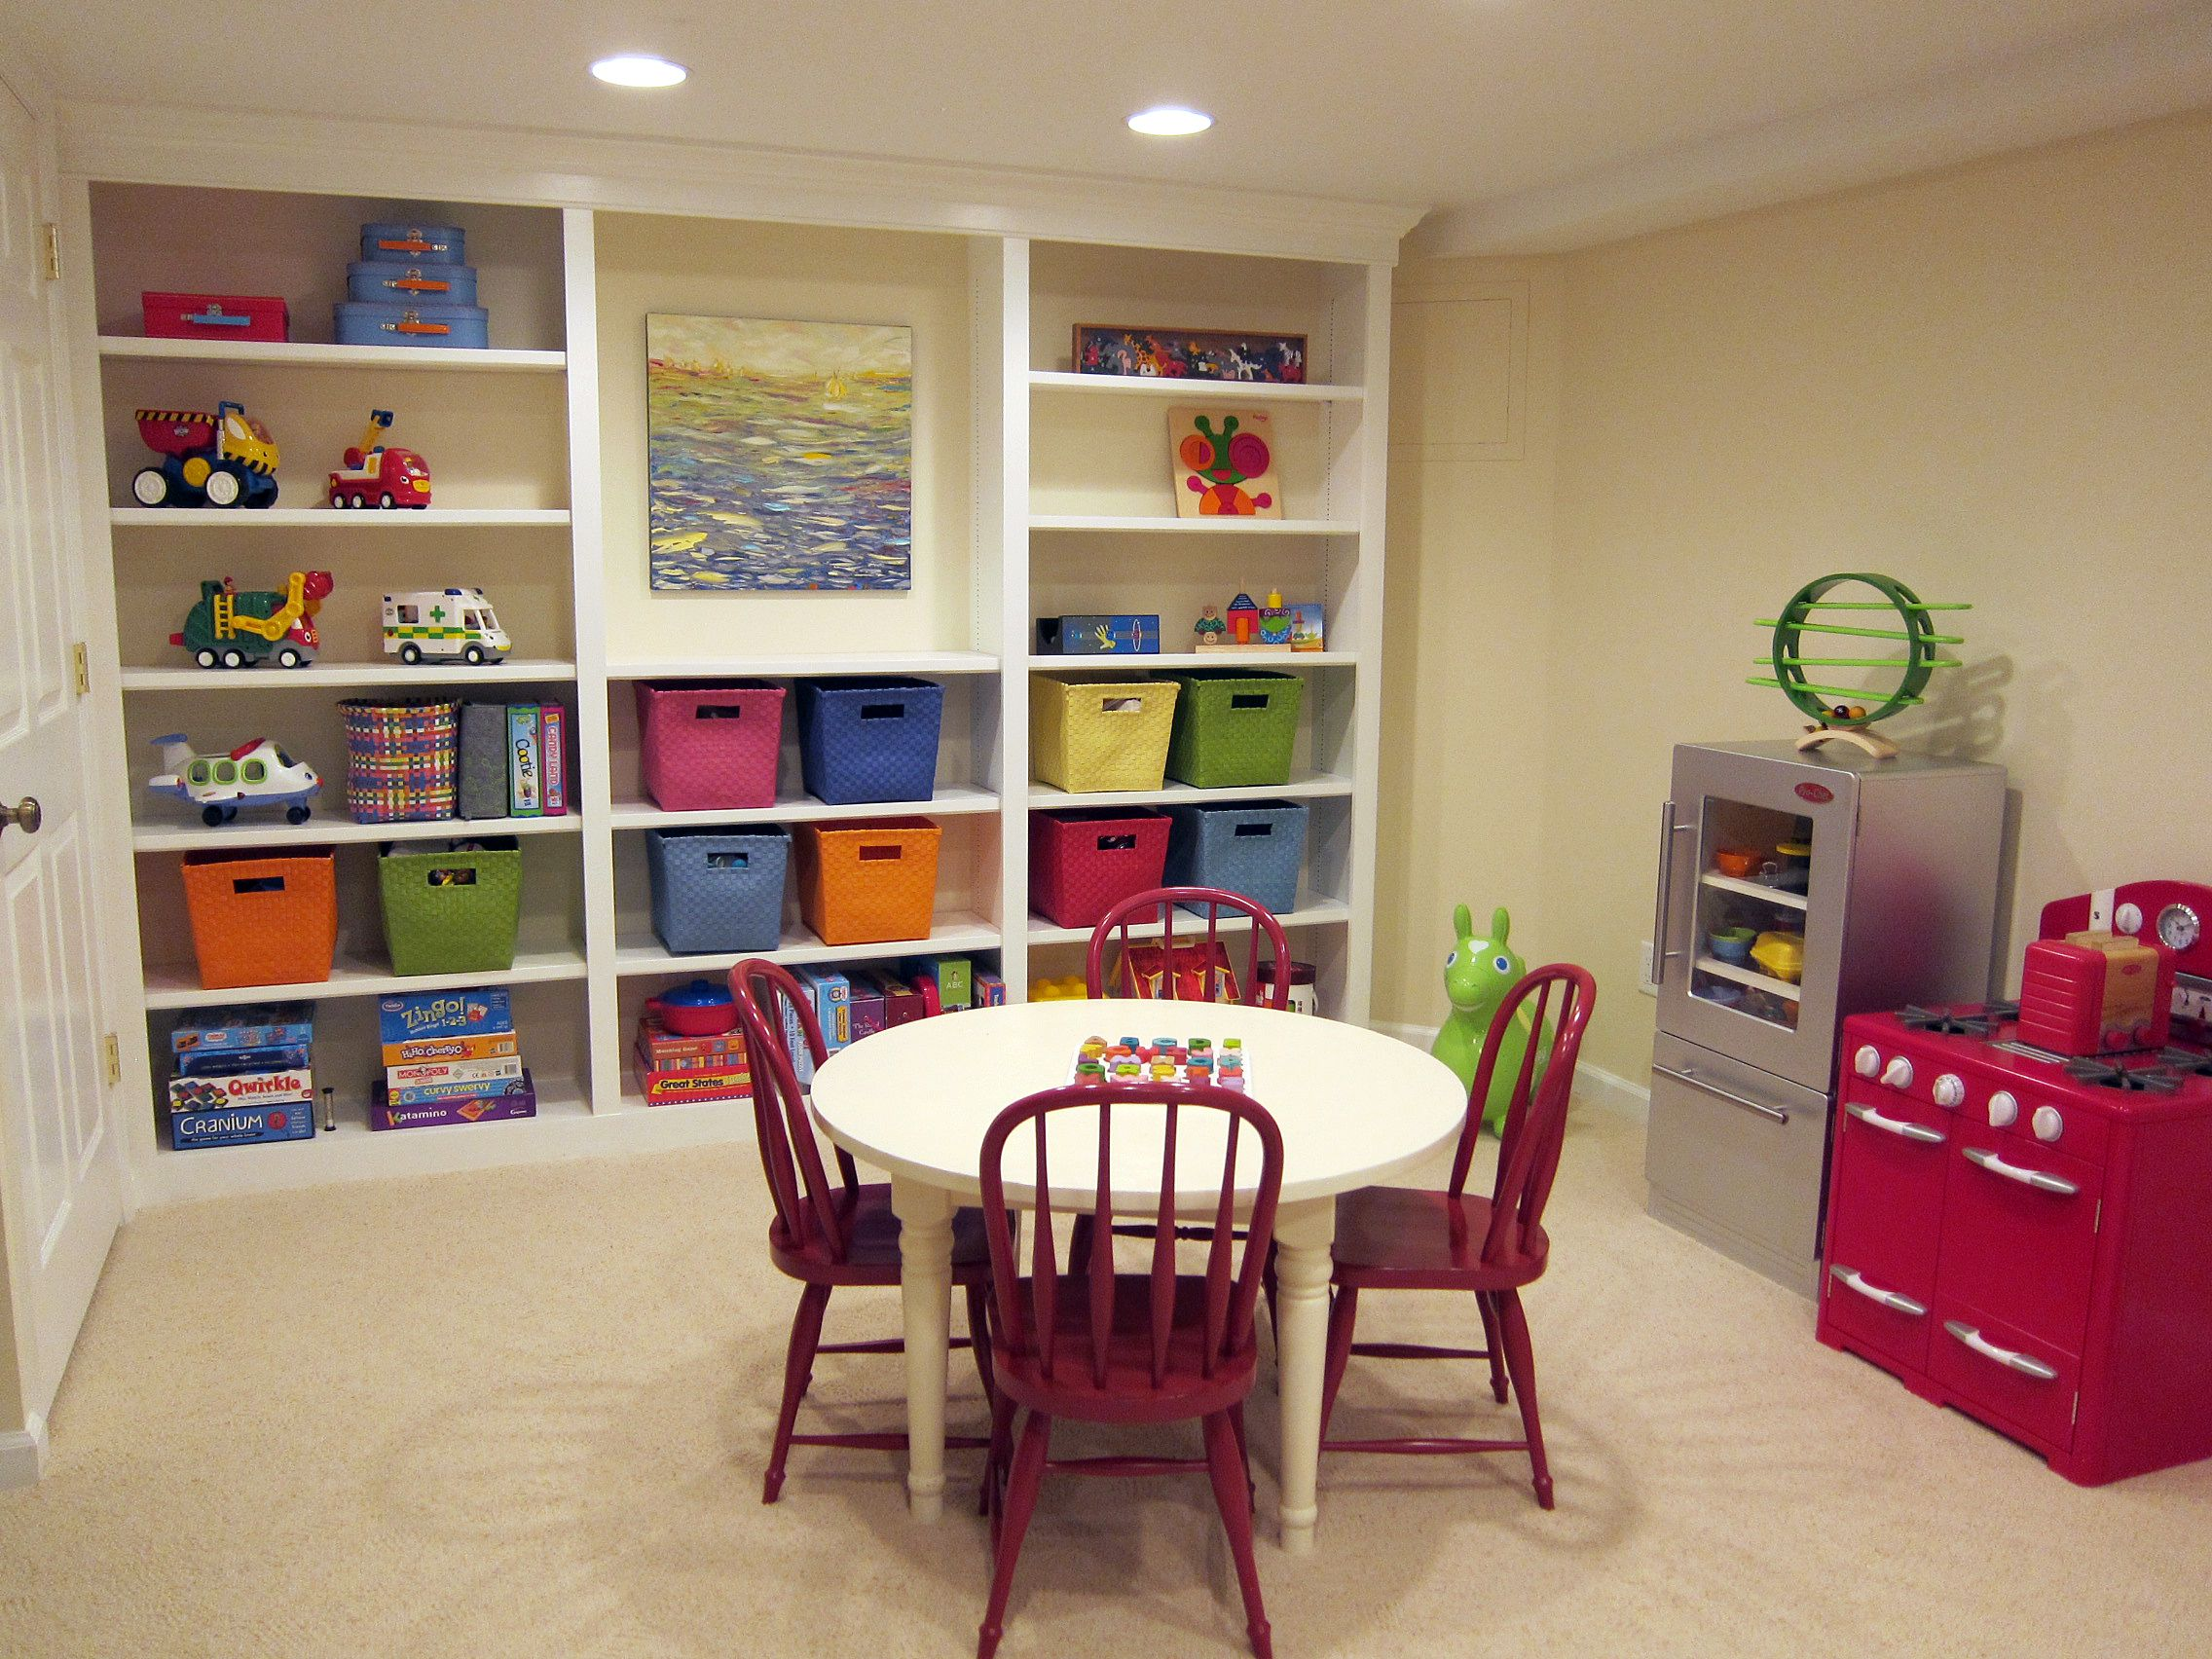 Basement Ideas For Kids our new basement - playroom area 1 (bookshelf, play kitchen, toys